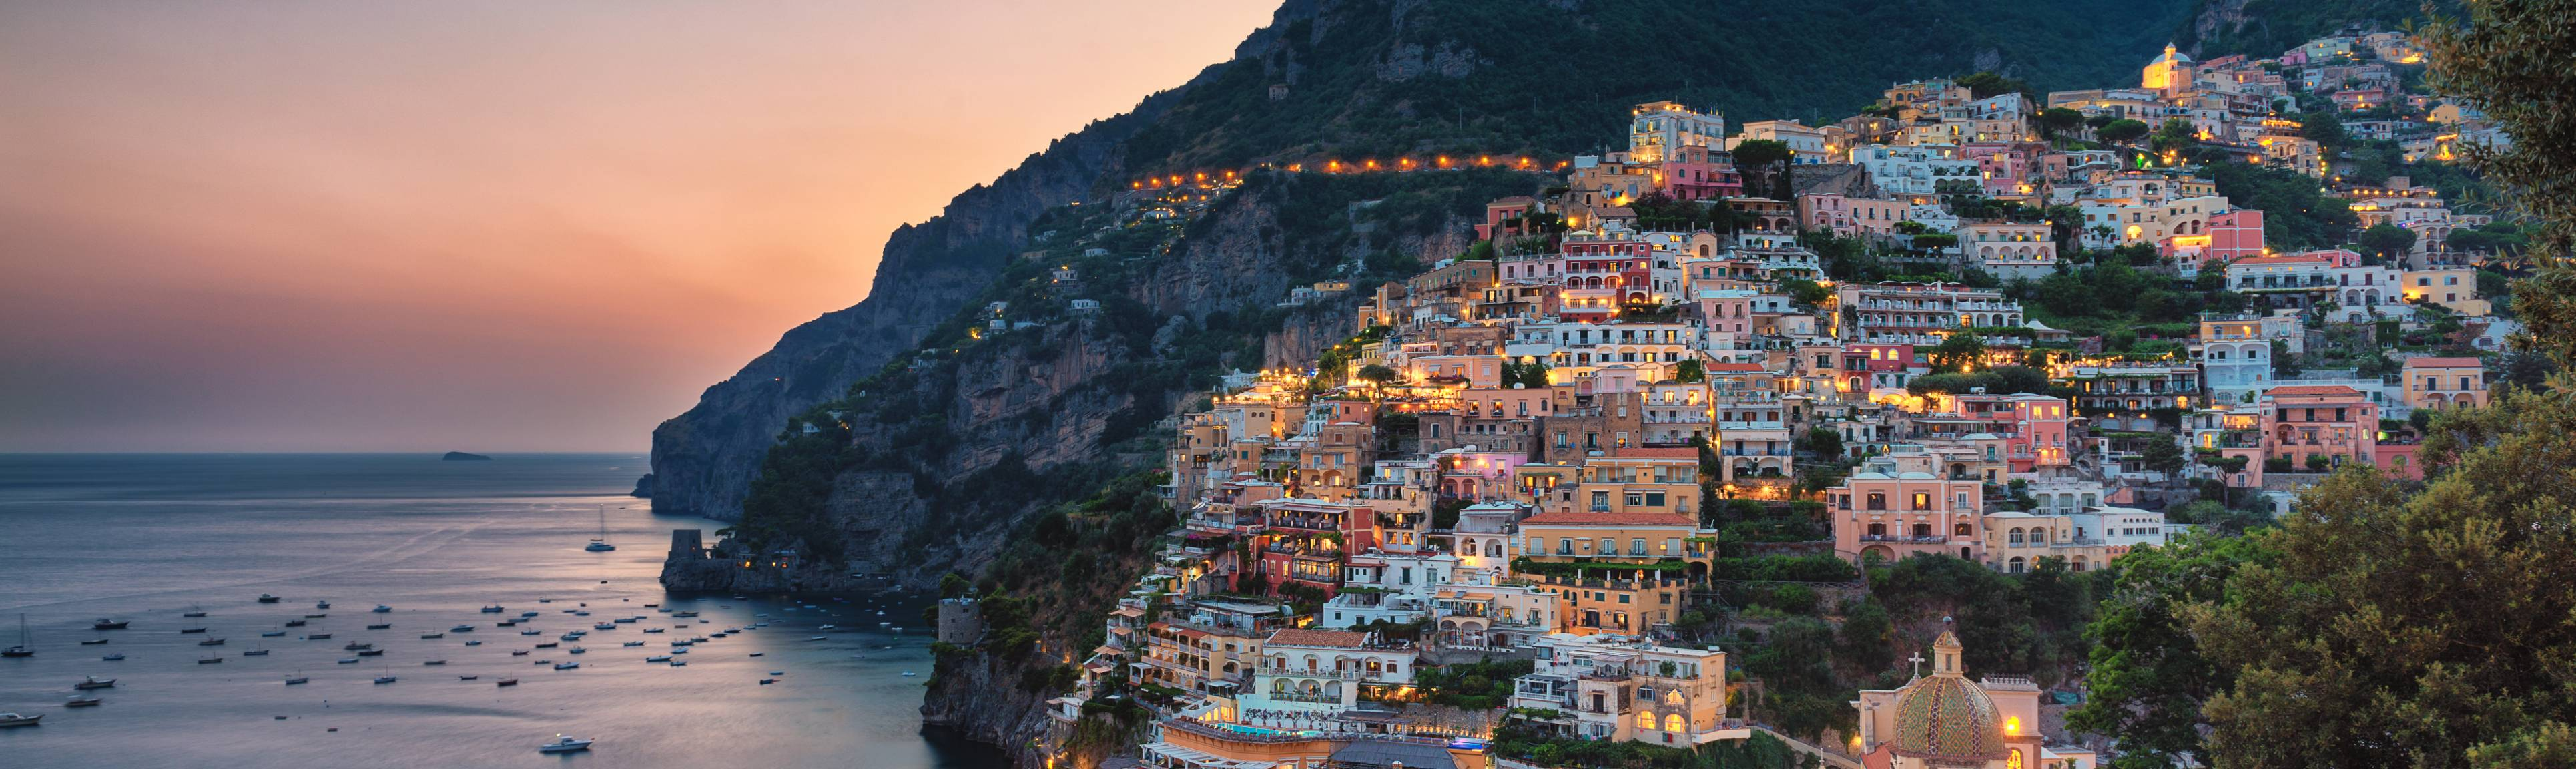 Sunset view of illuminated houses in Positano along the Amalfi coast